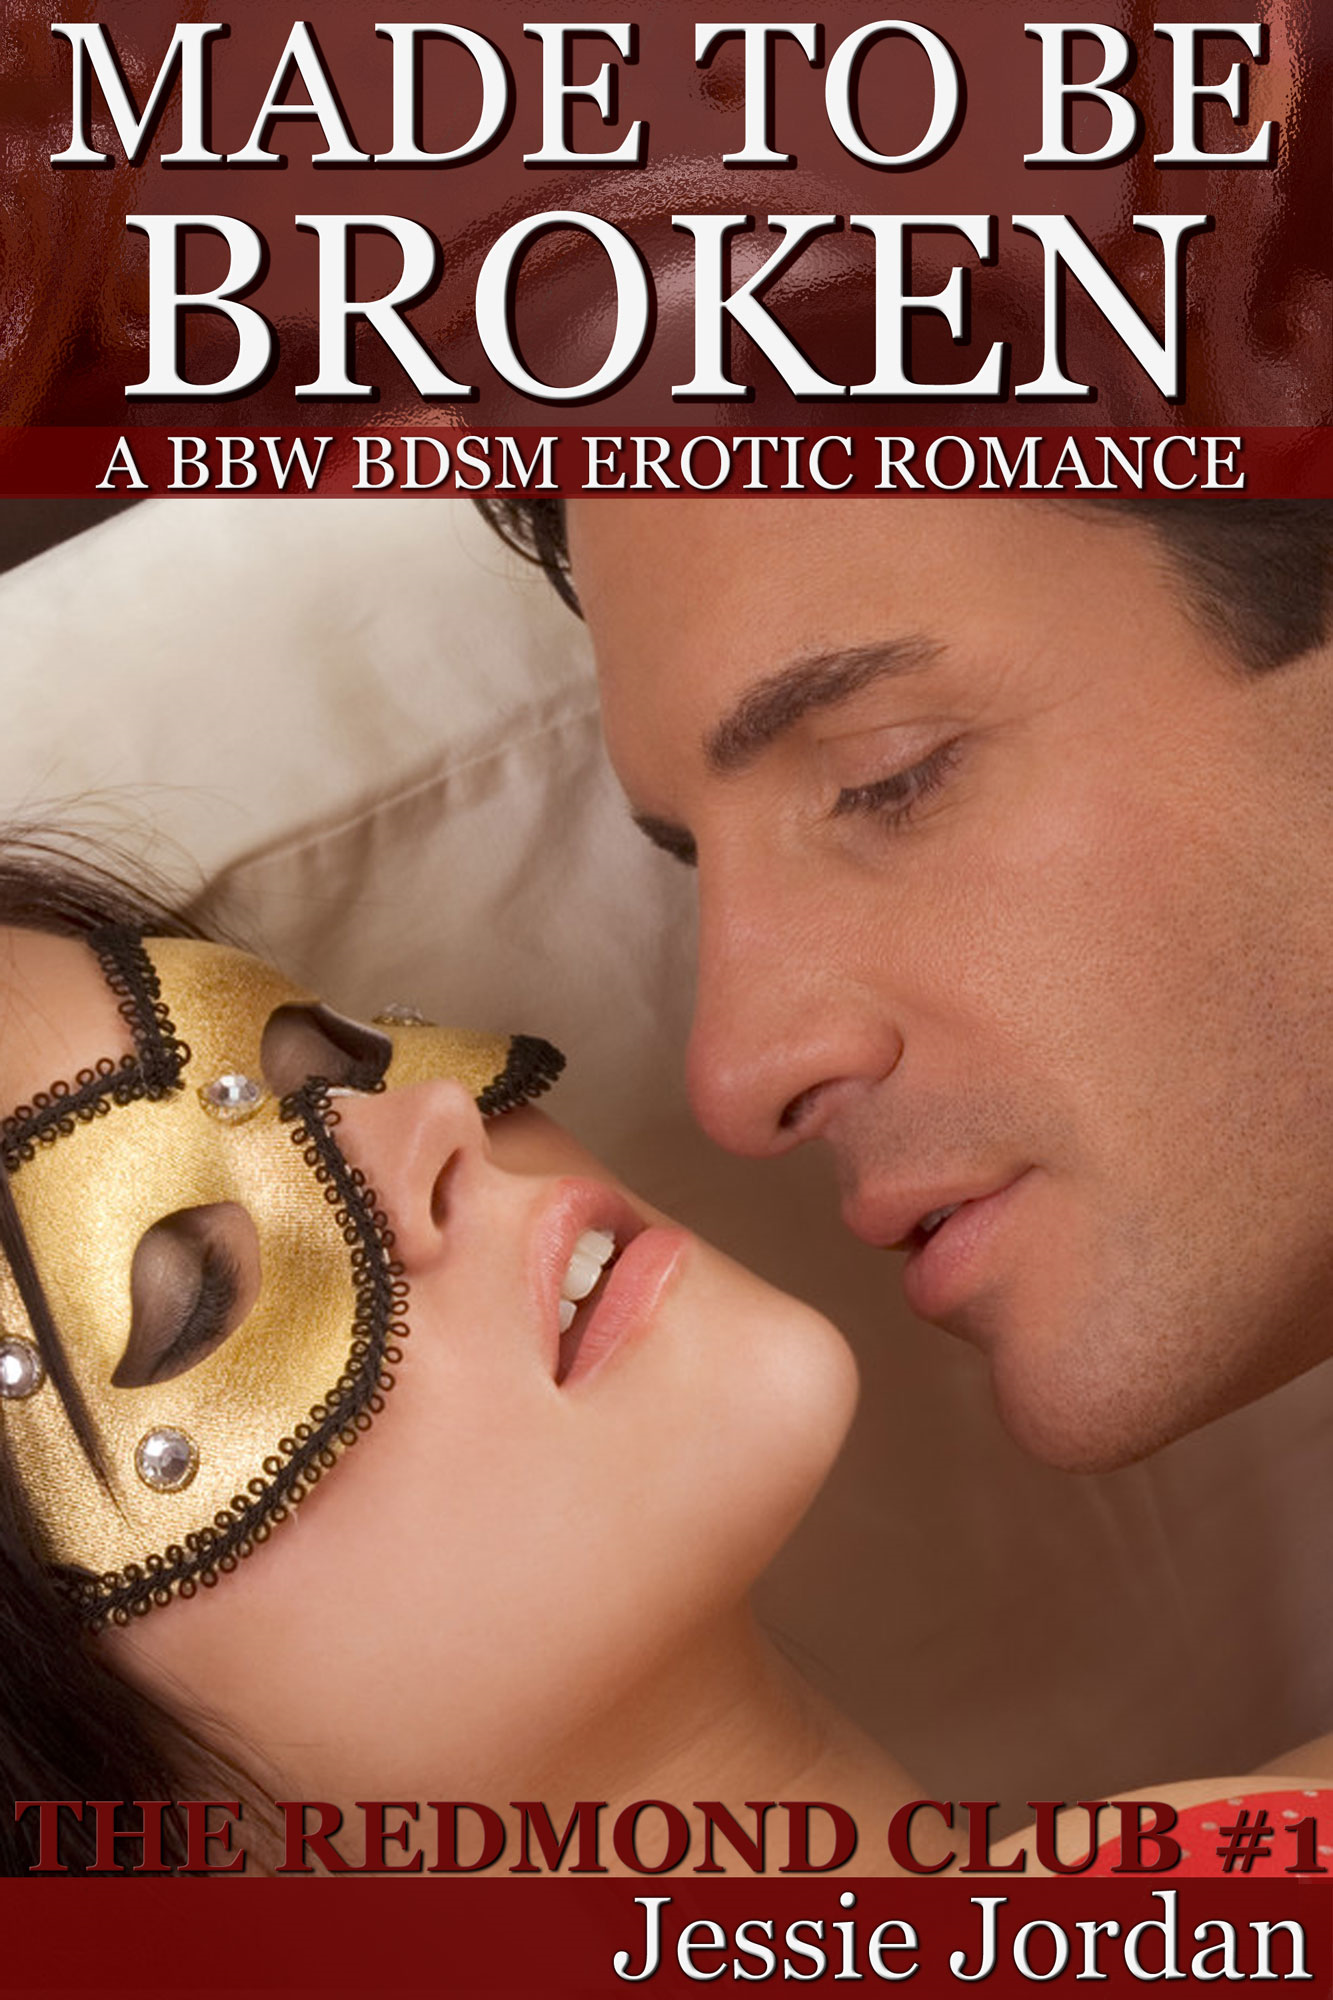 Made to be Broken A BBW BDSM Erotic Romance